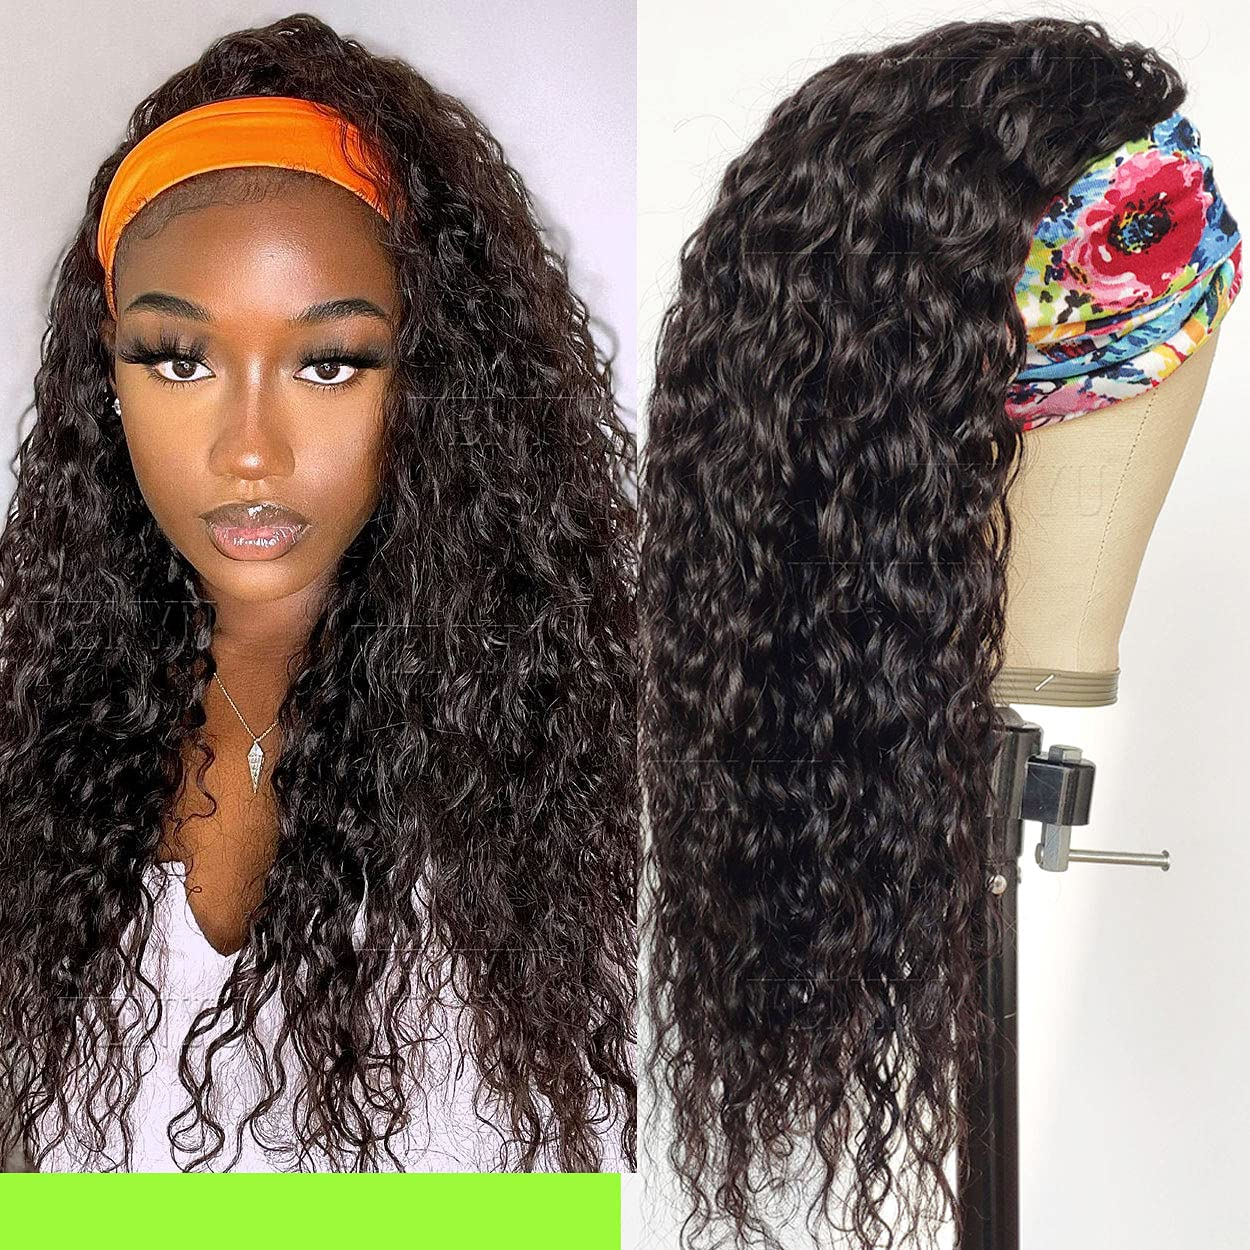 WENYU Industry No. 1 Headband Wigs For Black Women Curly Wave Hair Water Mail order Human